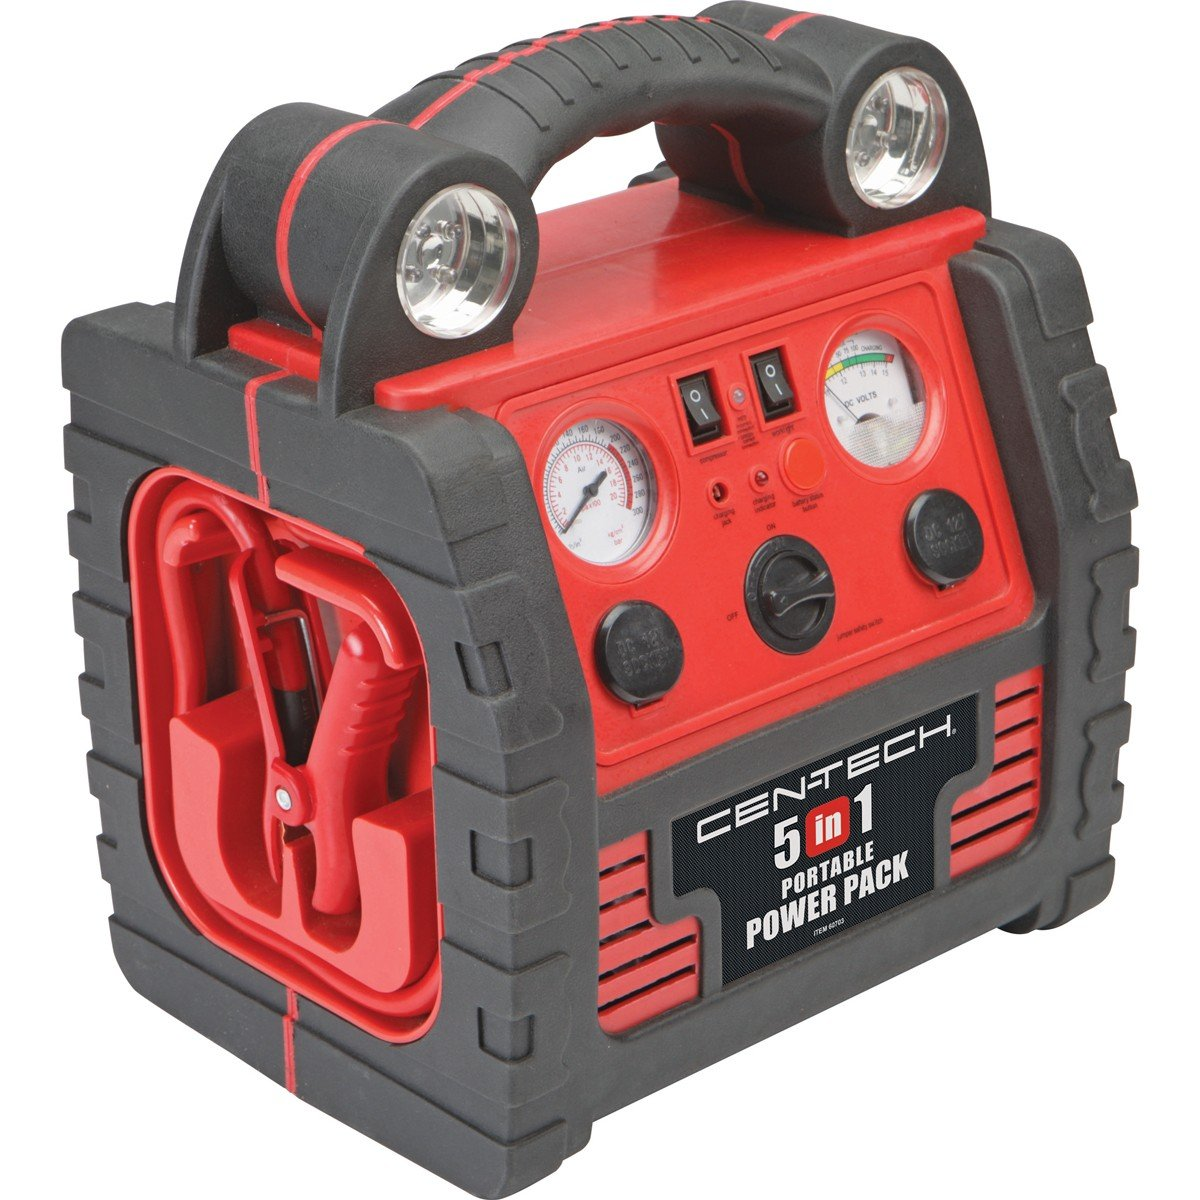 Cen Tech Battery Charger Well Known Brand